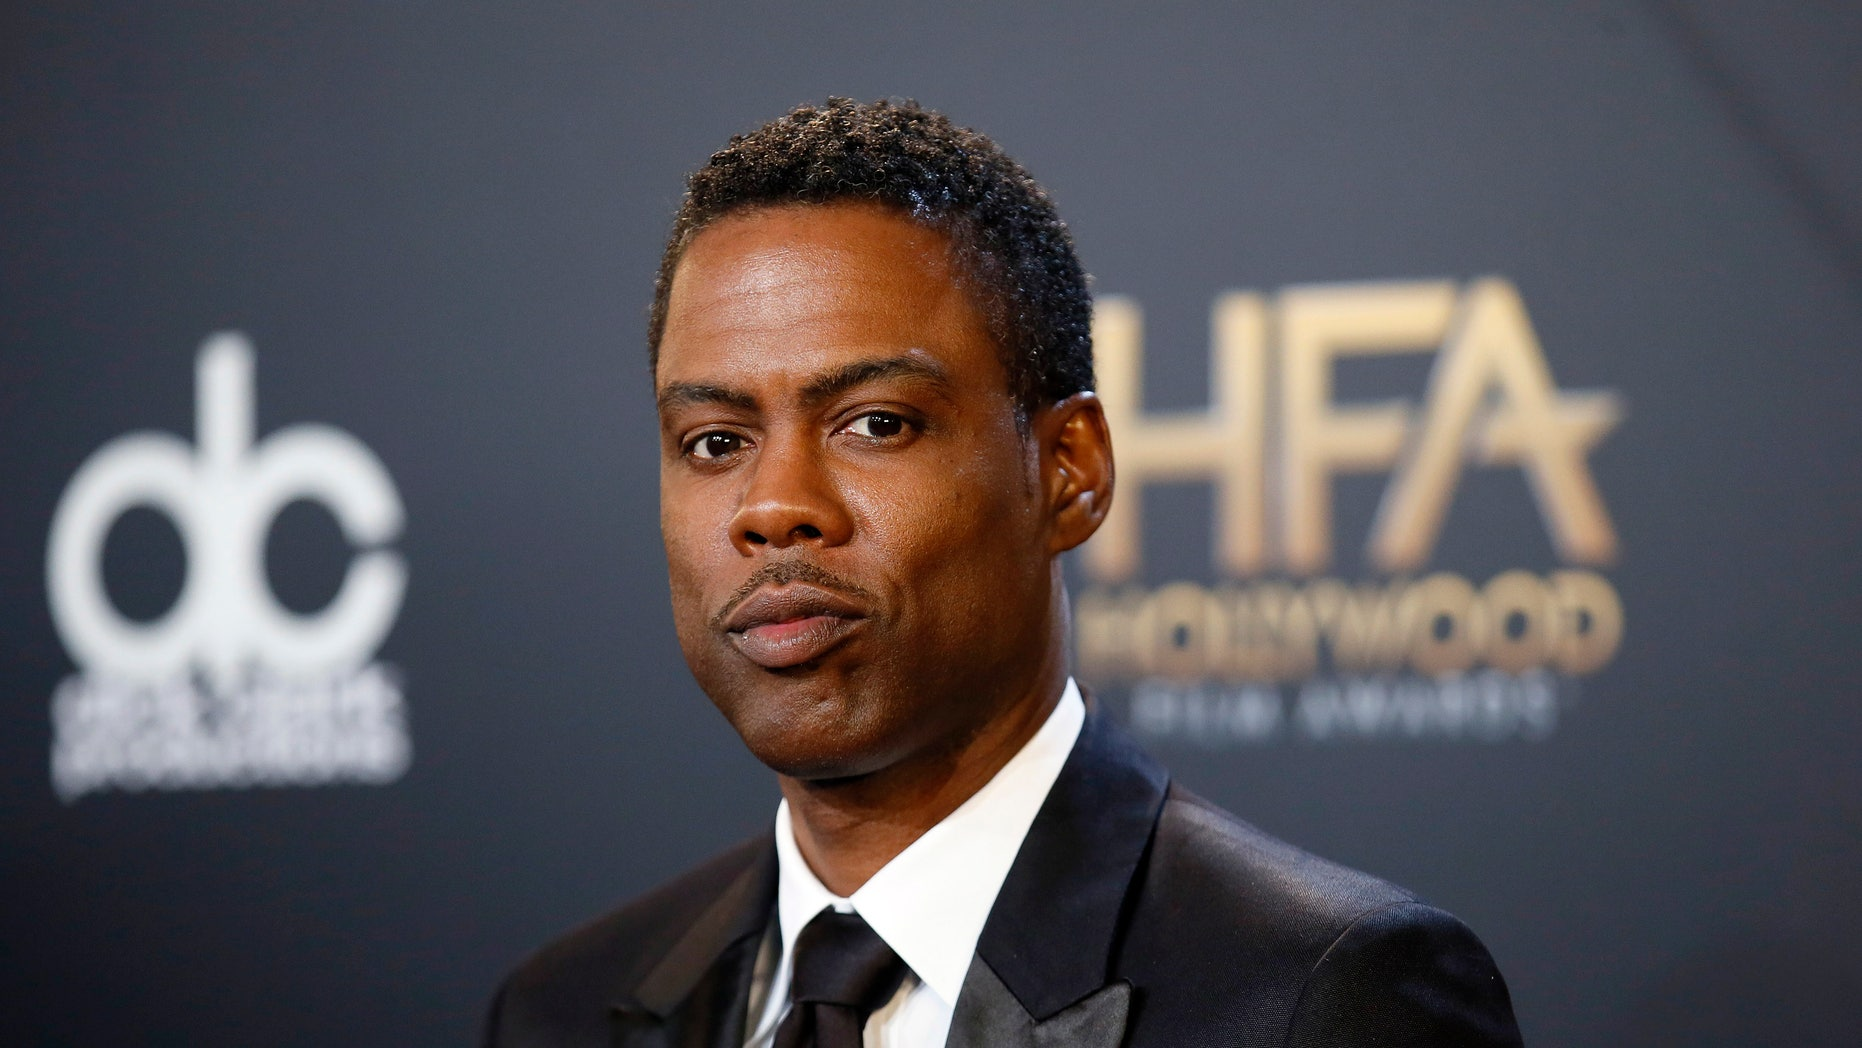 """Actor Chris Rock poses backstage with his comedy film award for """"Top Five"""" during the Hollywood Film Awards in Hollywood, California November 14, 2014.  REUTERS/Danny Moloshok (UNITED STATES  - Tags: ENTERTAINMENT)   - RTR4E84B"""